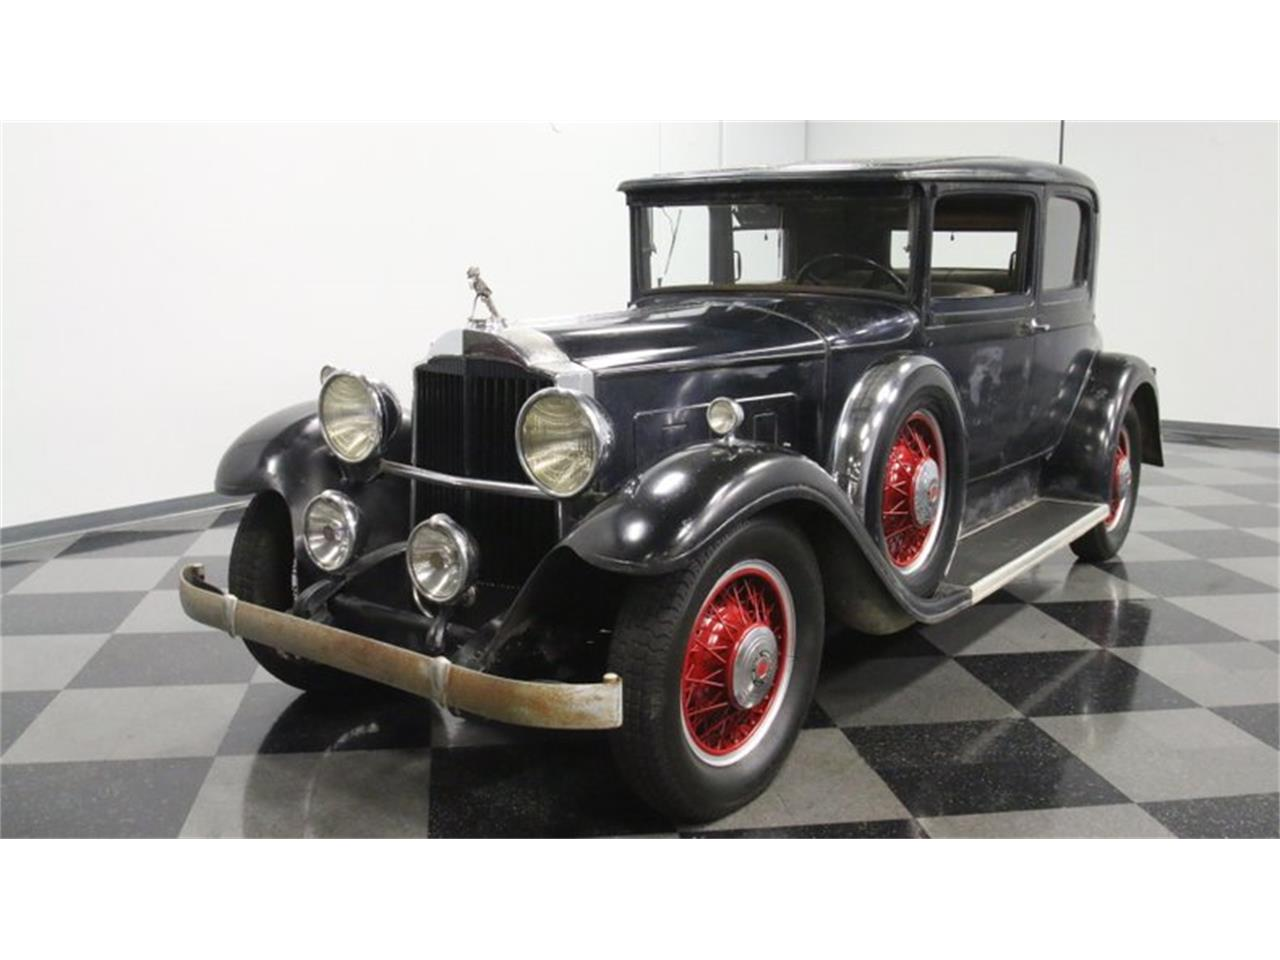 Large Picture of Classic 1931 Packard Antique located in Lithia Springs Georgia Offered by Streetside Classics - Atlanta - QG5Q